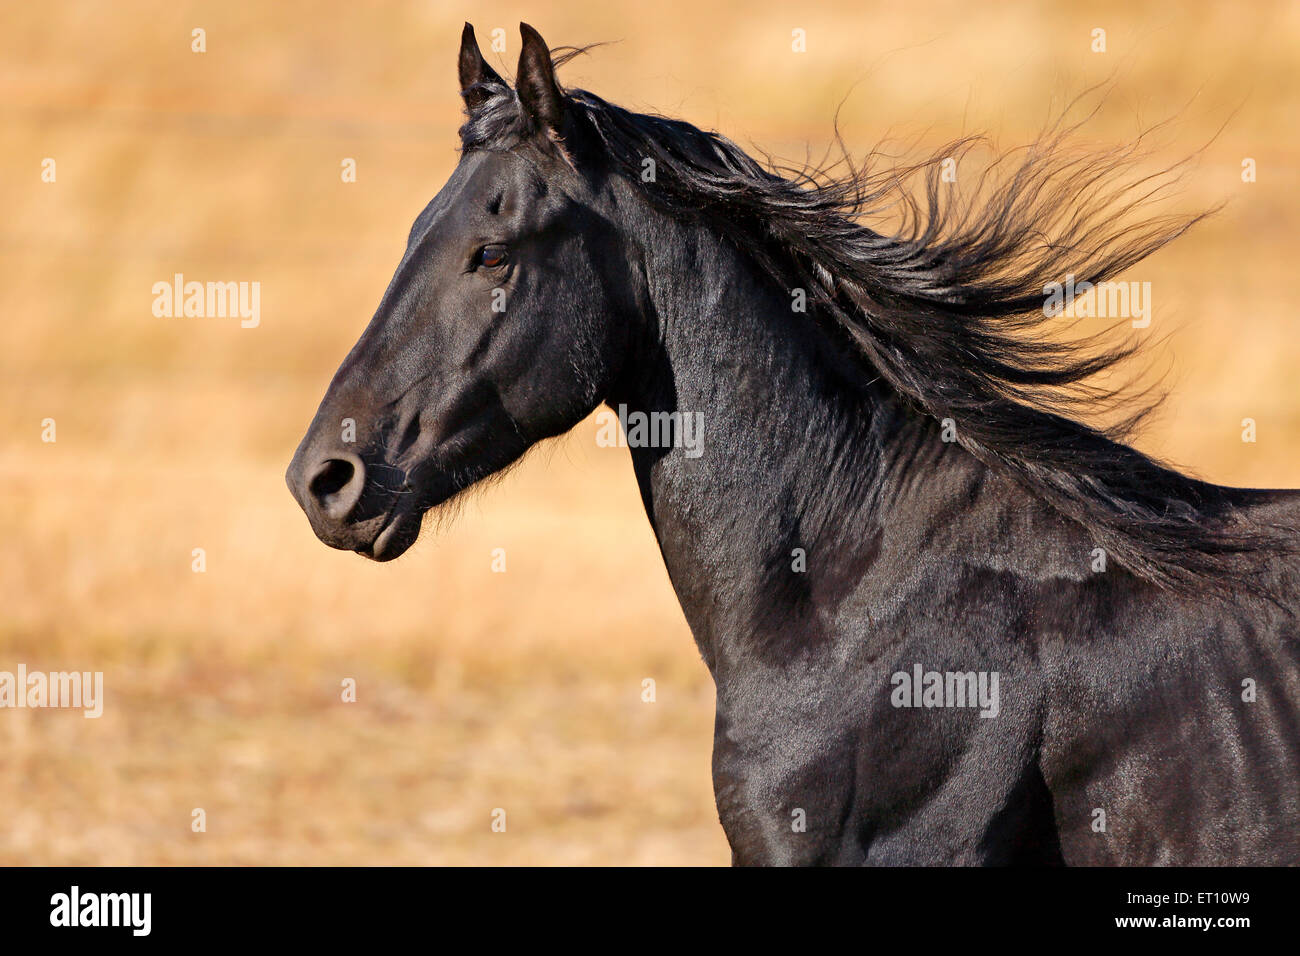 Head-shot of Black Friesian Stallion cantering, late afternoon sunlight - Stock Image